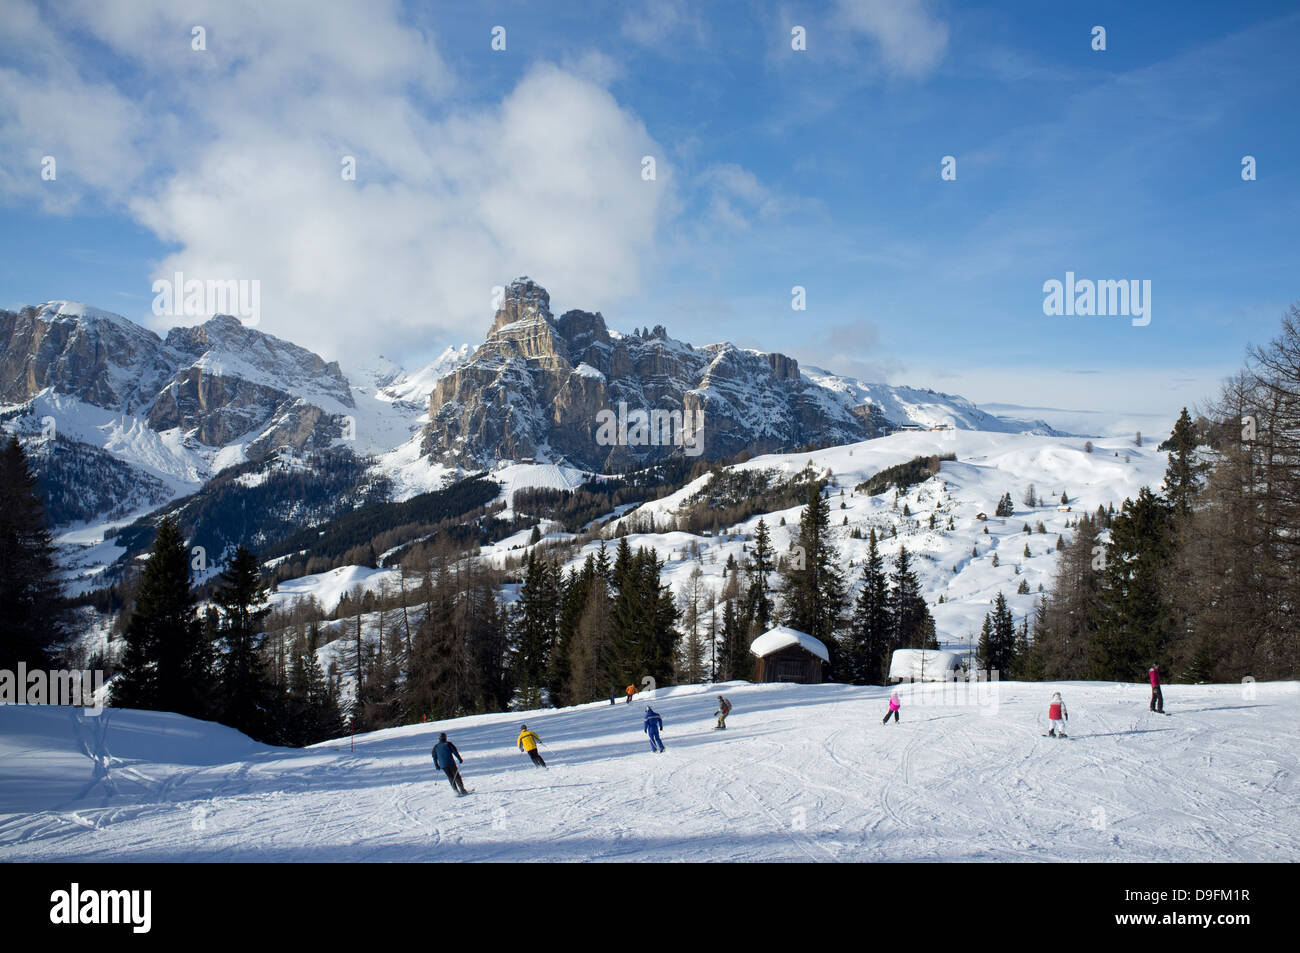 Skiers at the Alta Badia ski resort with Sassongher Mountain in the distance, Dolomites, South Tyrol, Italy - Stock Image